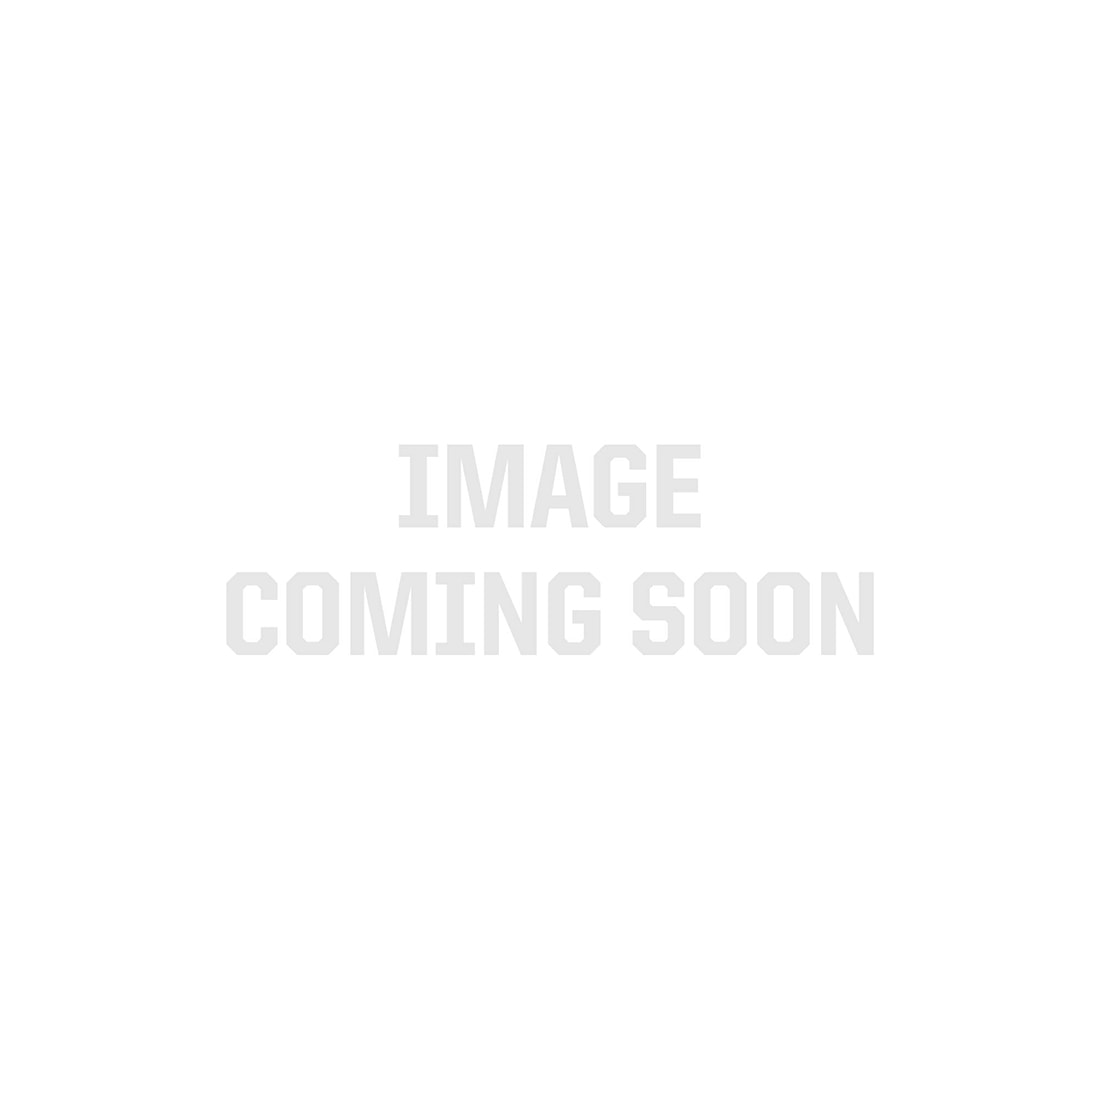 C9 Color-Rite 26 LED Christmas Light String, Green Wire, 17.6 feet long, 8 in. spacing (Multi-Color: Red, Green, Blue, Yellow, Purple)